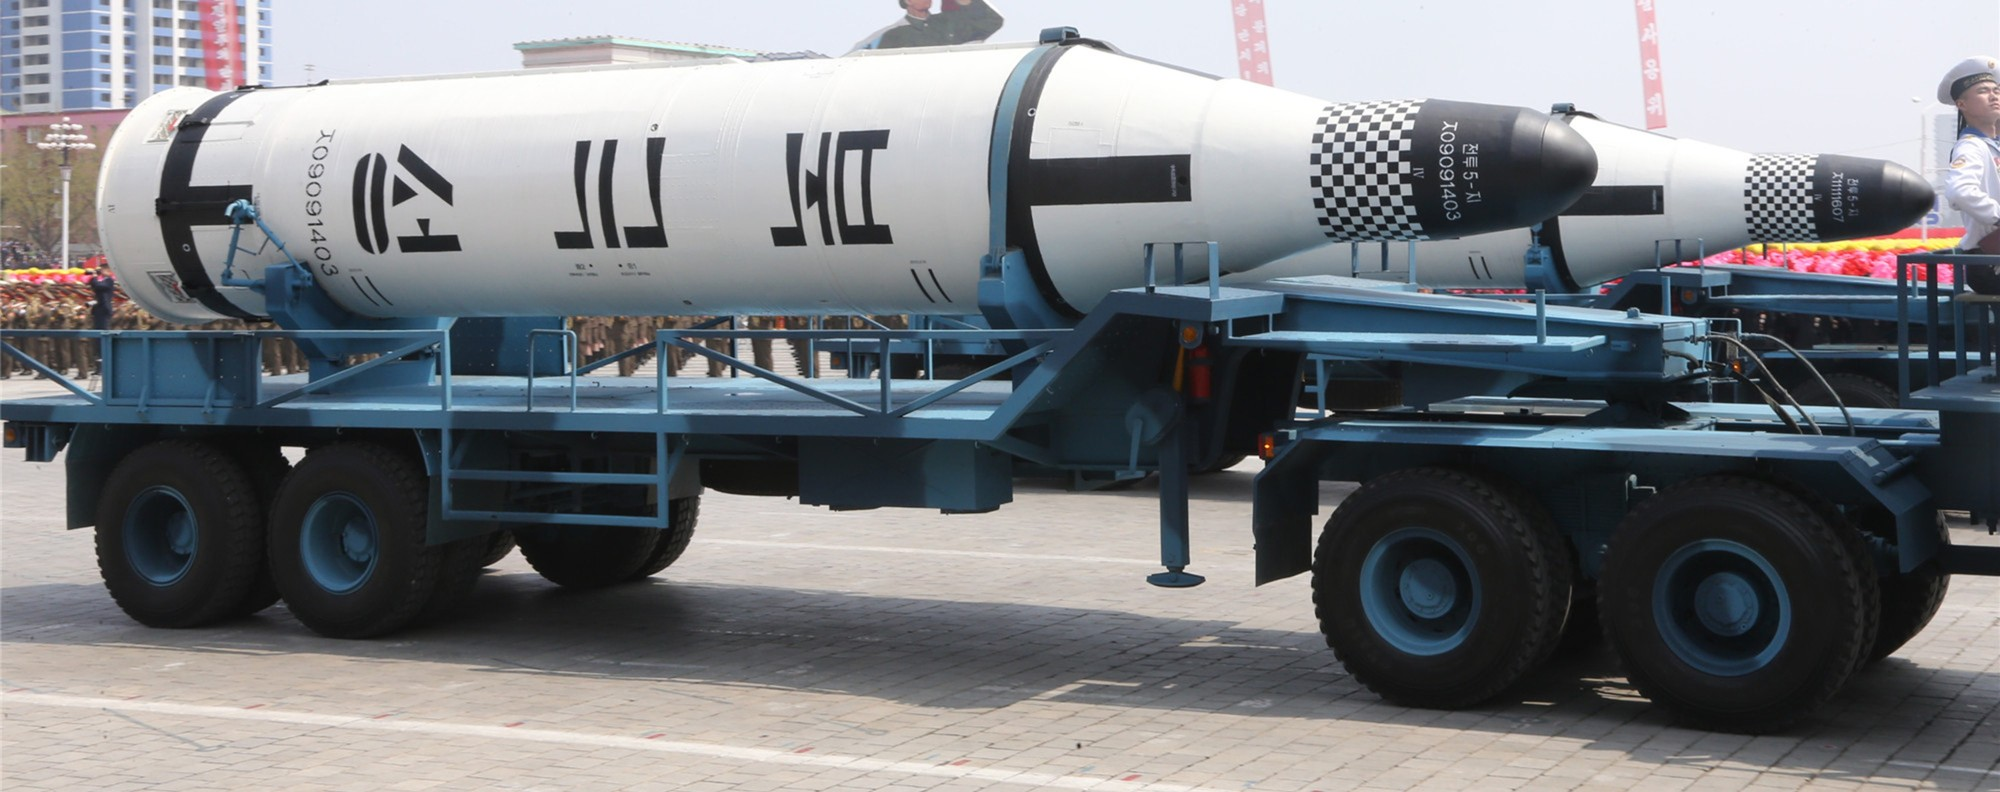 A ballistic missile is displayed during a parade in Pyongyang. Photo: Xinhua